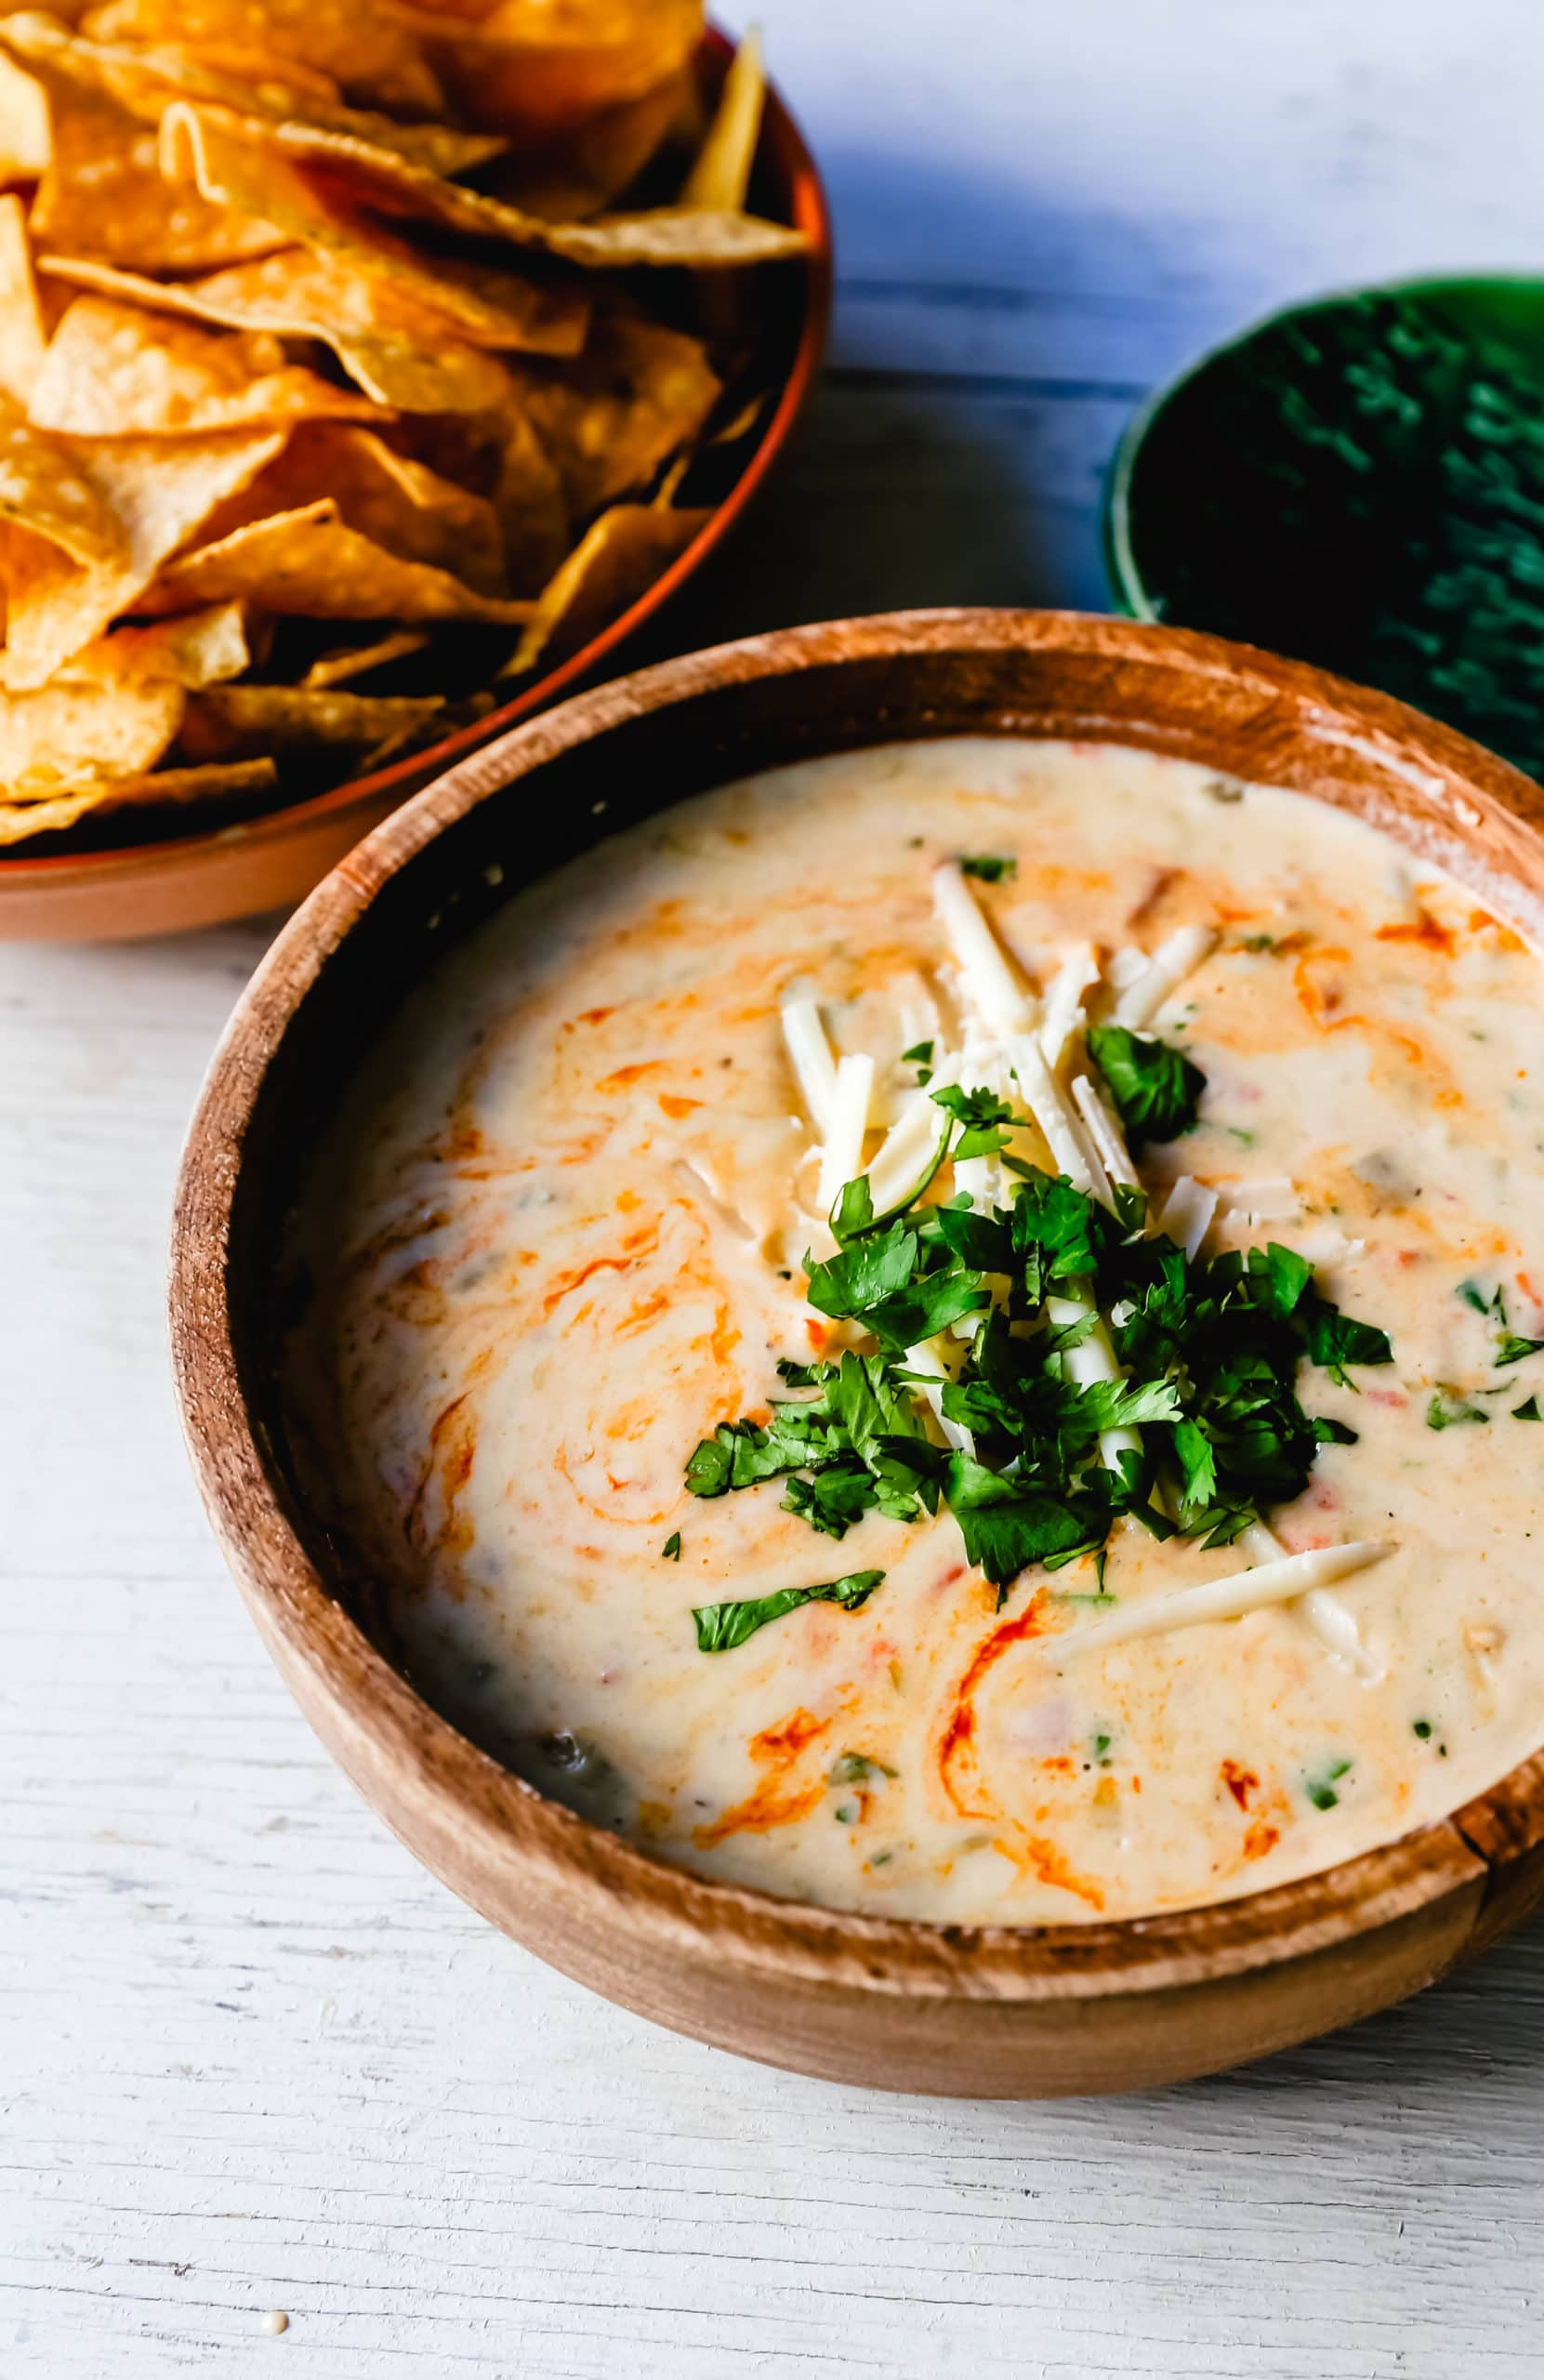 Queso Dip Creamy green chile queso blanco dip made with the perfect blend of cheeses, green chiles, fresh cilantro, and hot sauce. How to make the perfect homemade queso! #queso #cincodemayo #mexican #mexicanfood